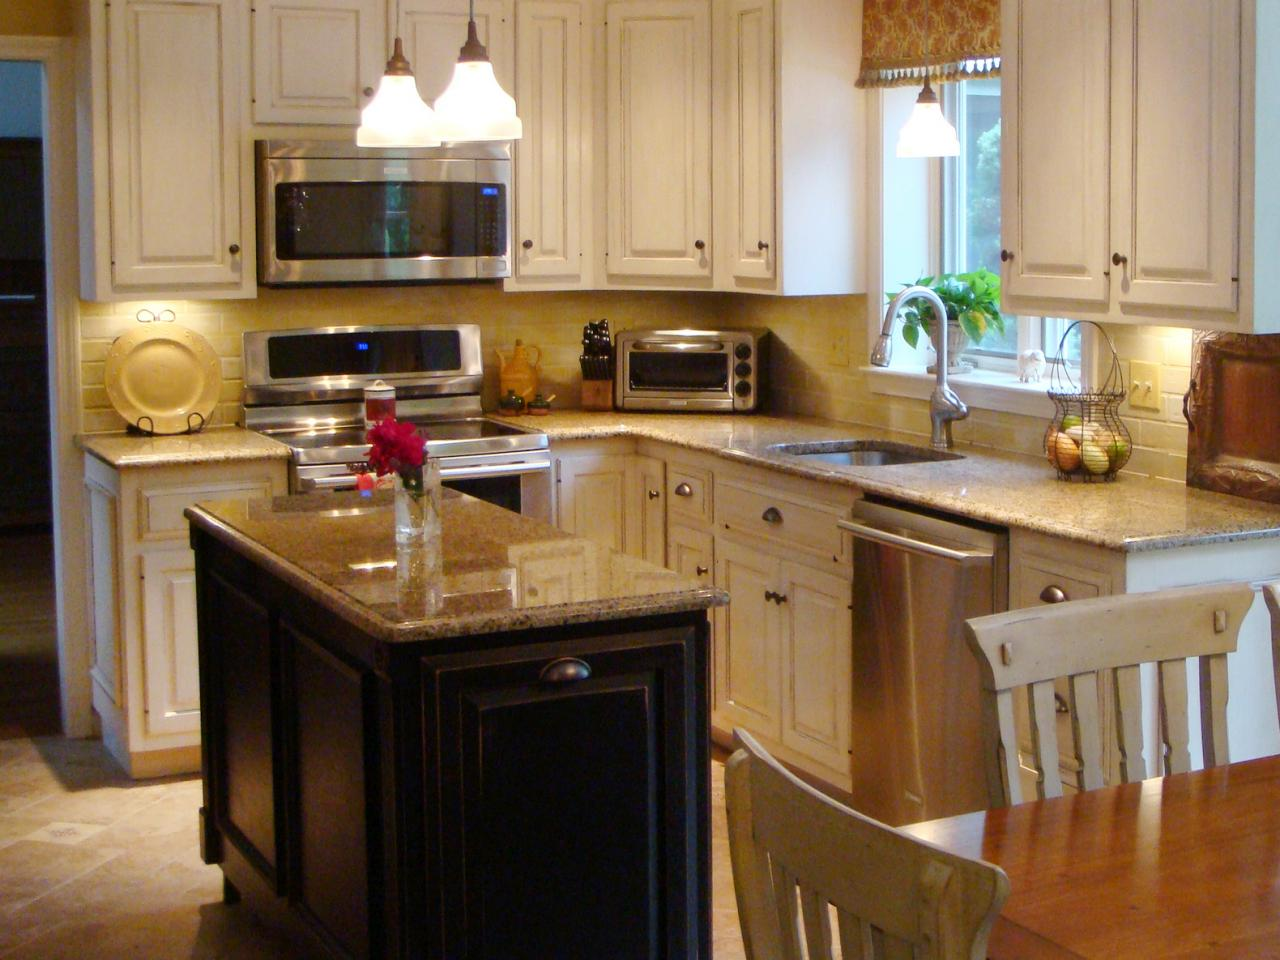 Kitchen Island Cabinets Small Ideas Design Pictures Room Decorating